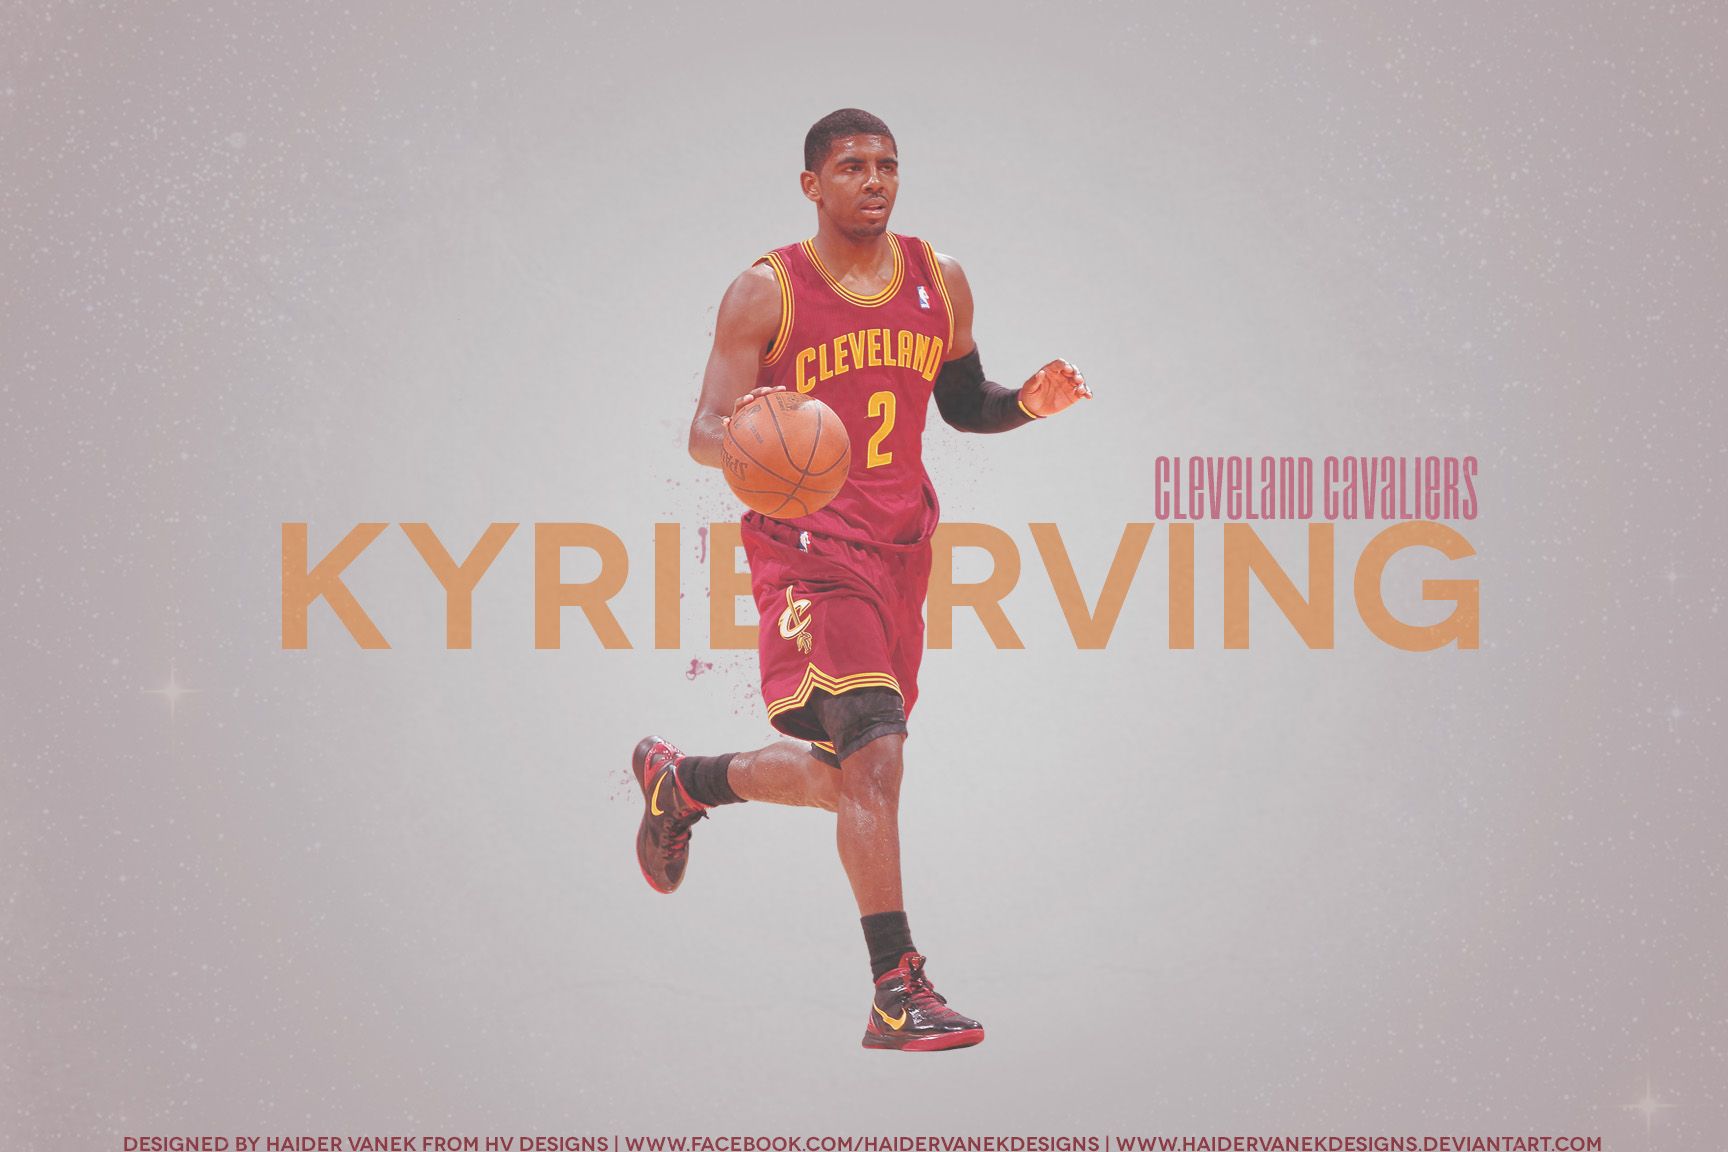 Keyboard For Kyrie irving HD Wallpapers  Android app on